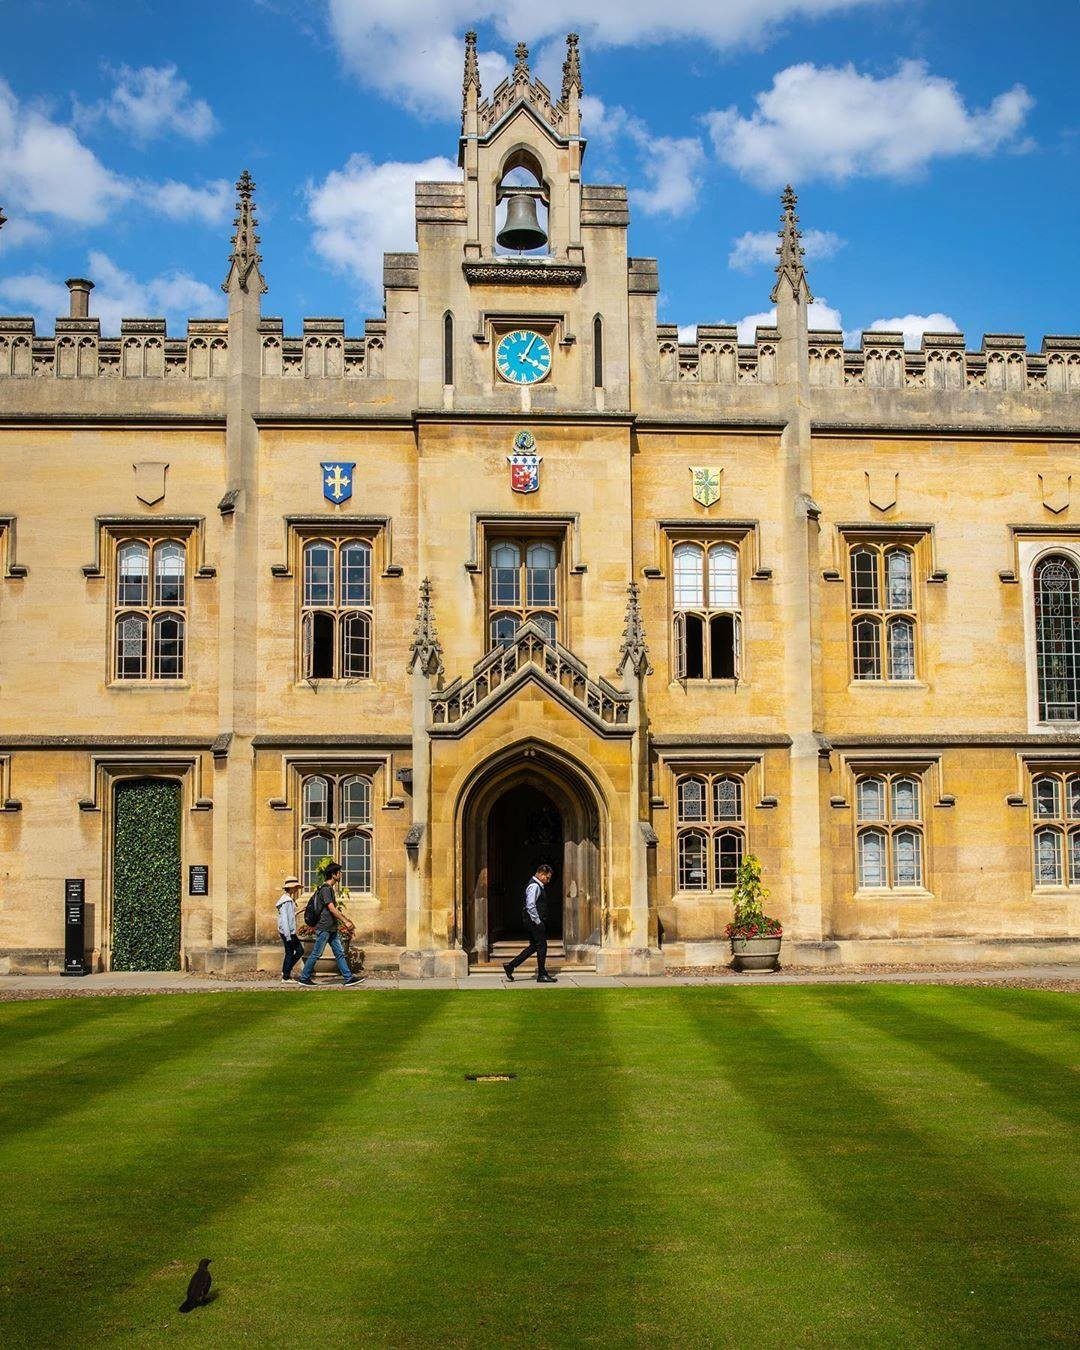 What Students Think about University of Cambridge